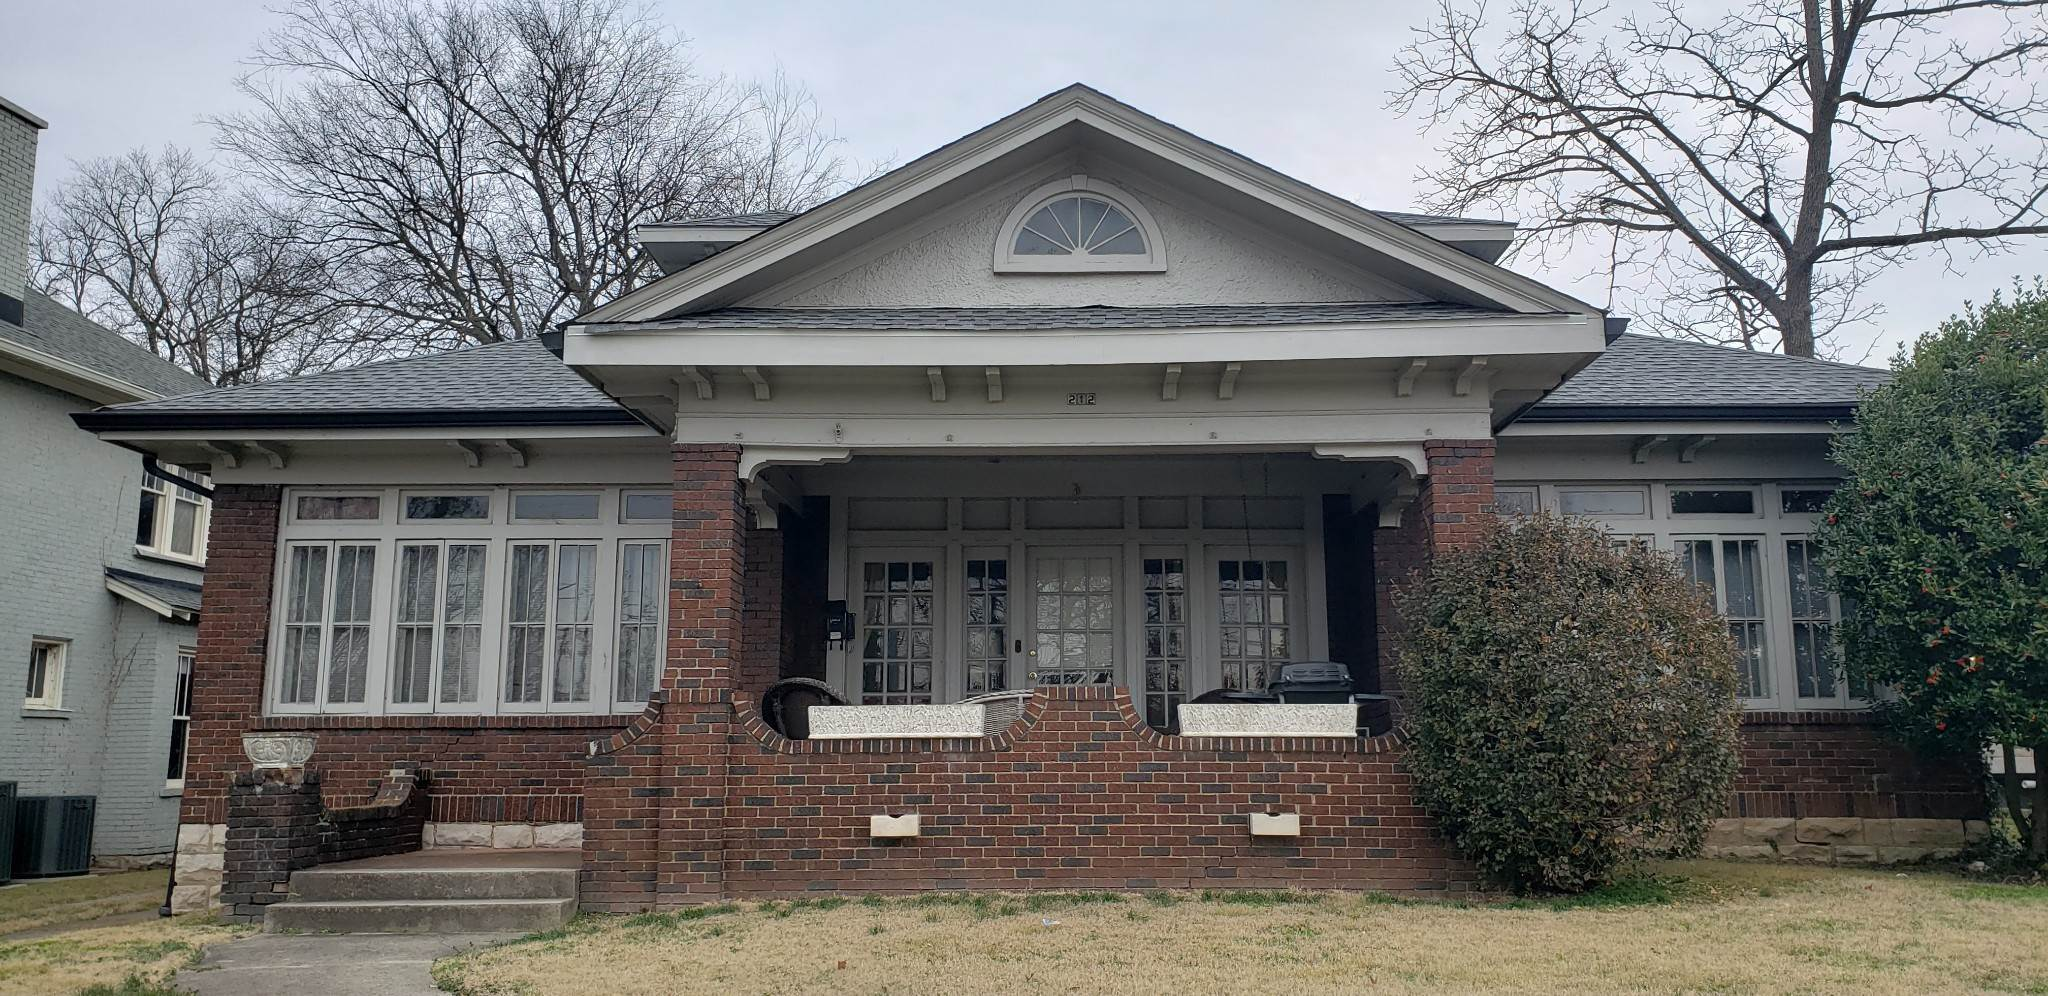 Single Family Homes for Sale at 212 Fairfax Avenue Nashville, Tennessee 37212 United States